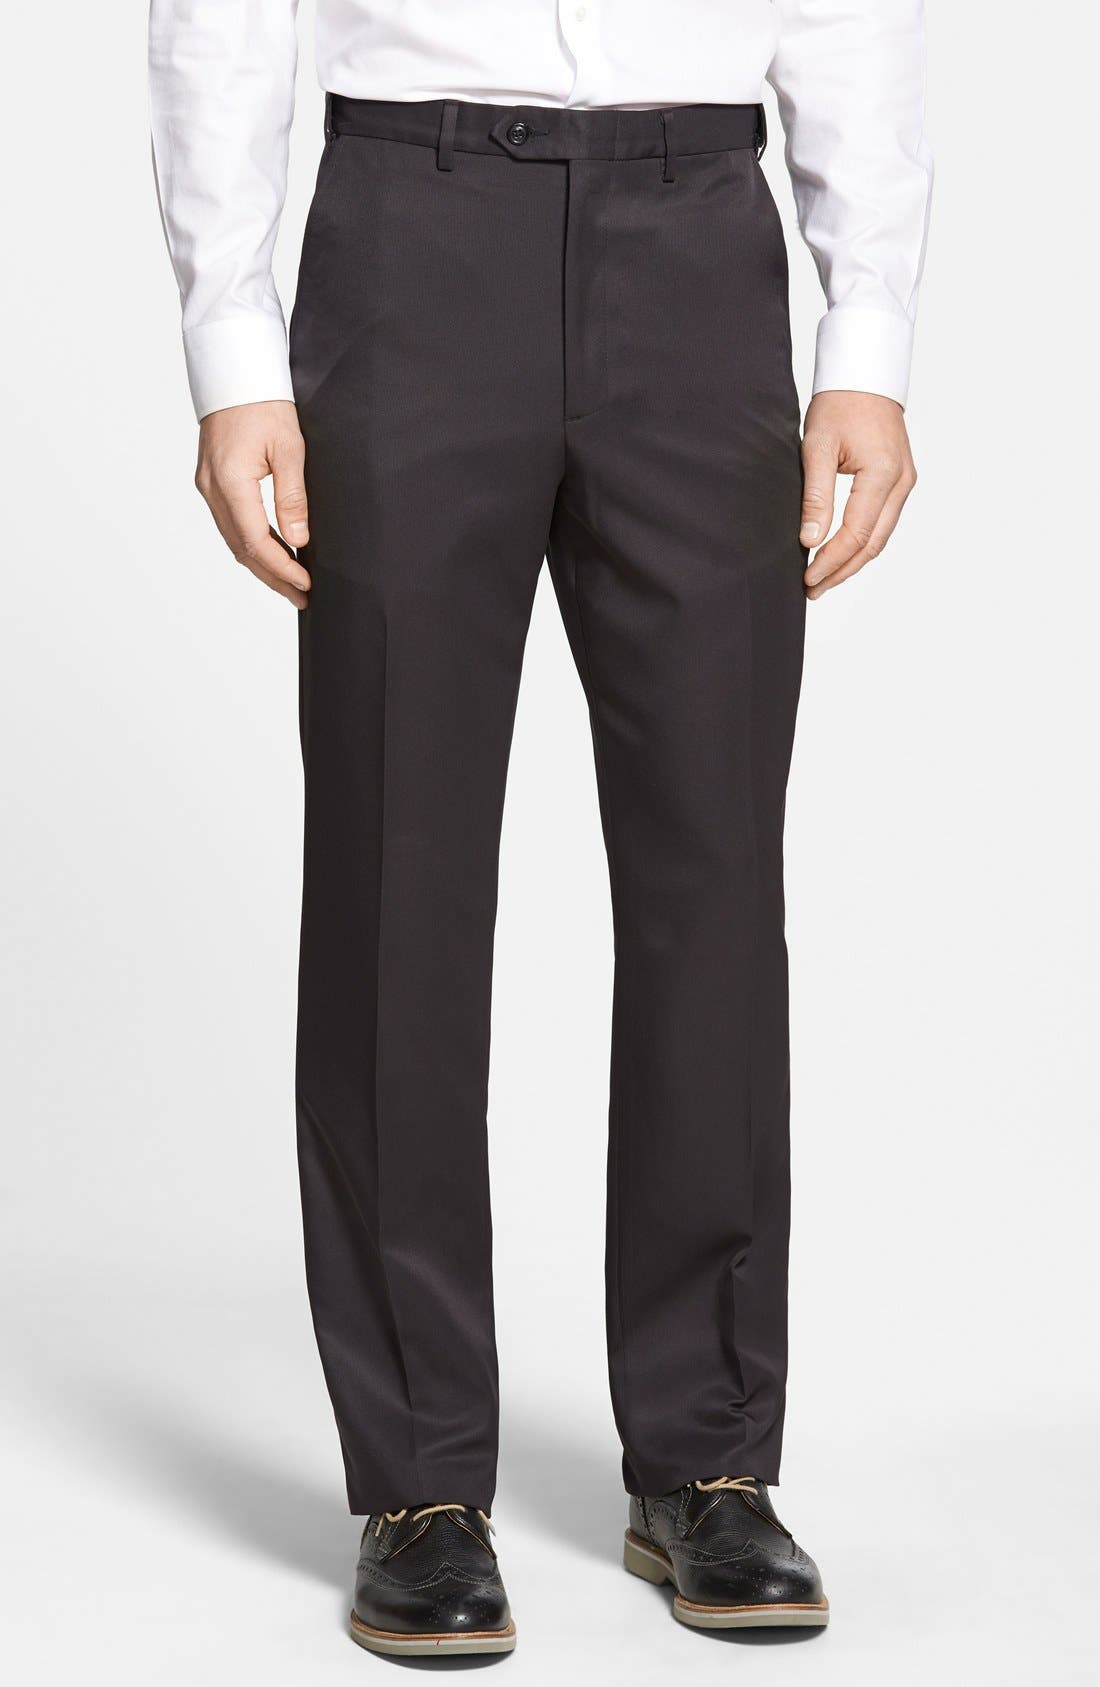 A clean flat-front cut styles sharp trousers fashioned from durable synthetics and fitted with a self-sizer waistband to ensure a custom fit. Style Name: Berle Self Sizer Waist Flat Front Classic Fit Trousers. Style Number: 1140773. Available in stores.